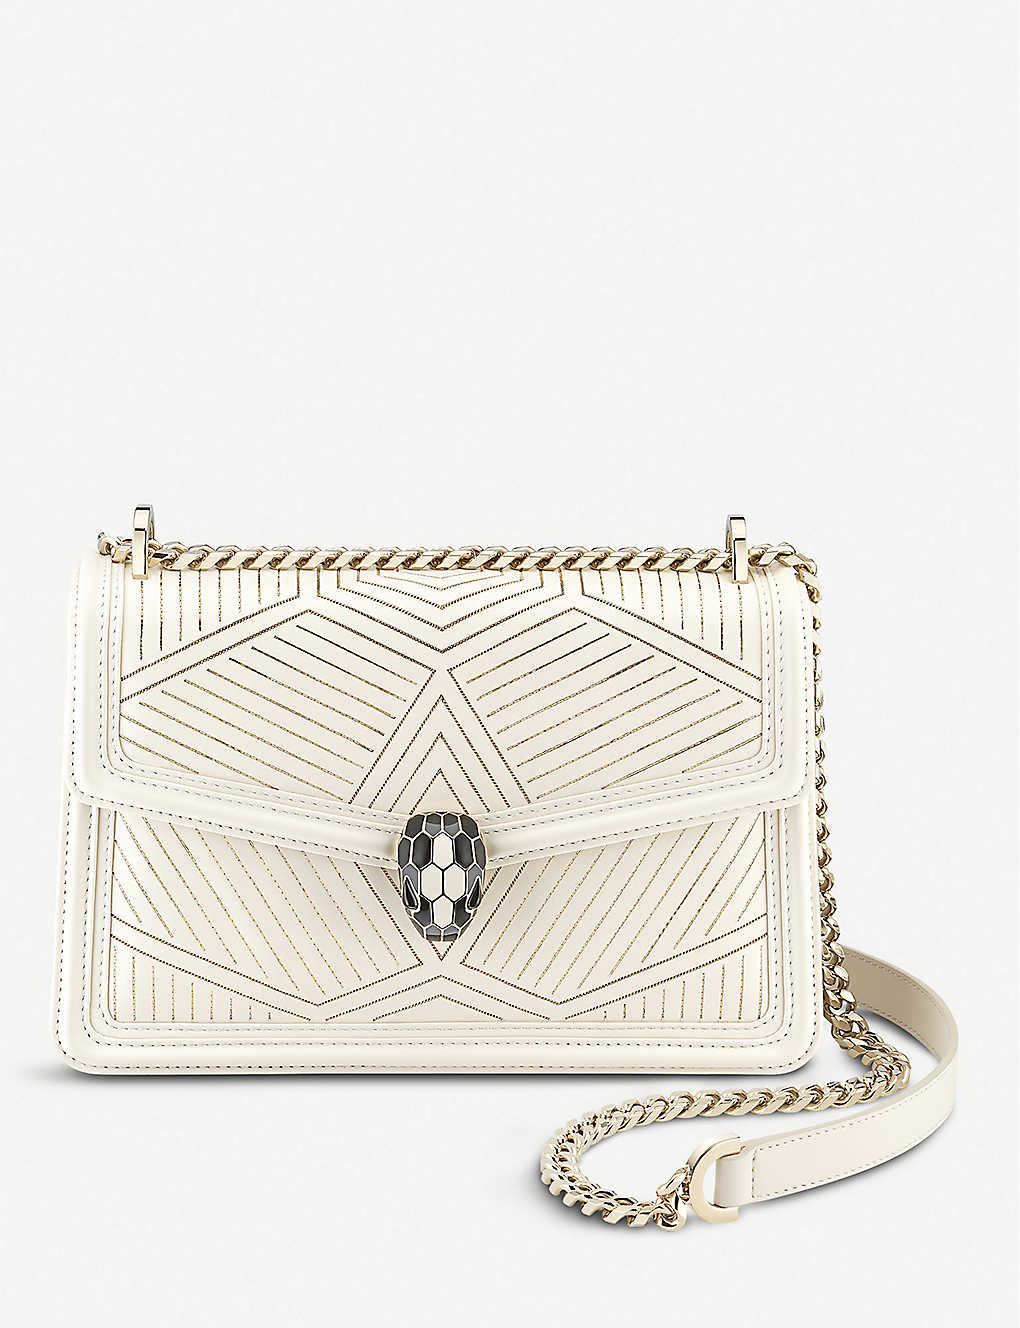 BVLGARI: Serpenti Forever quilted leather shoulder bag